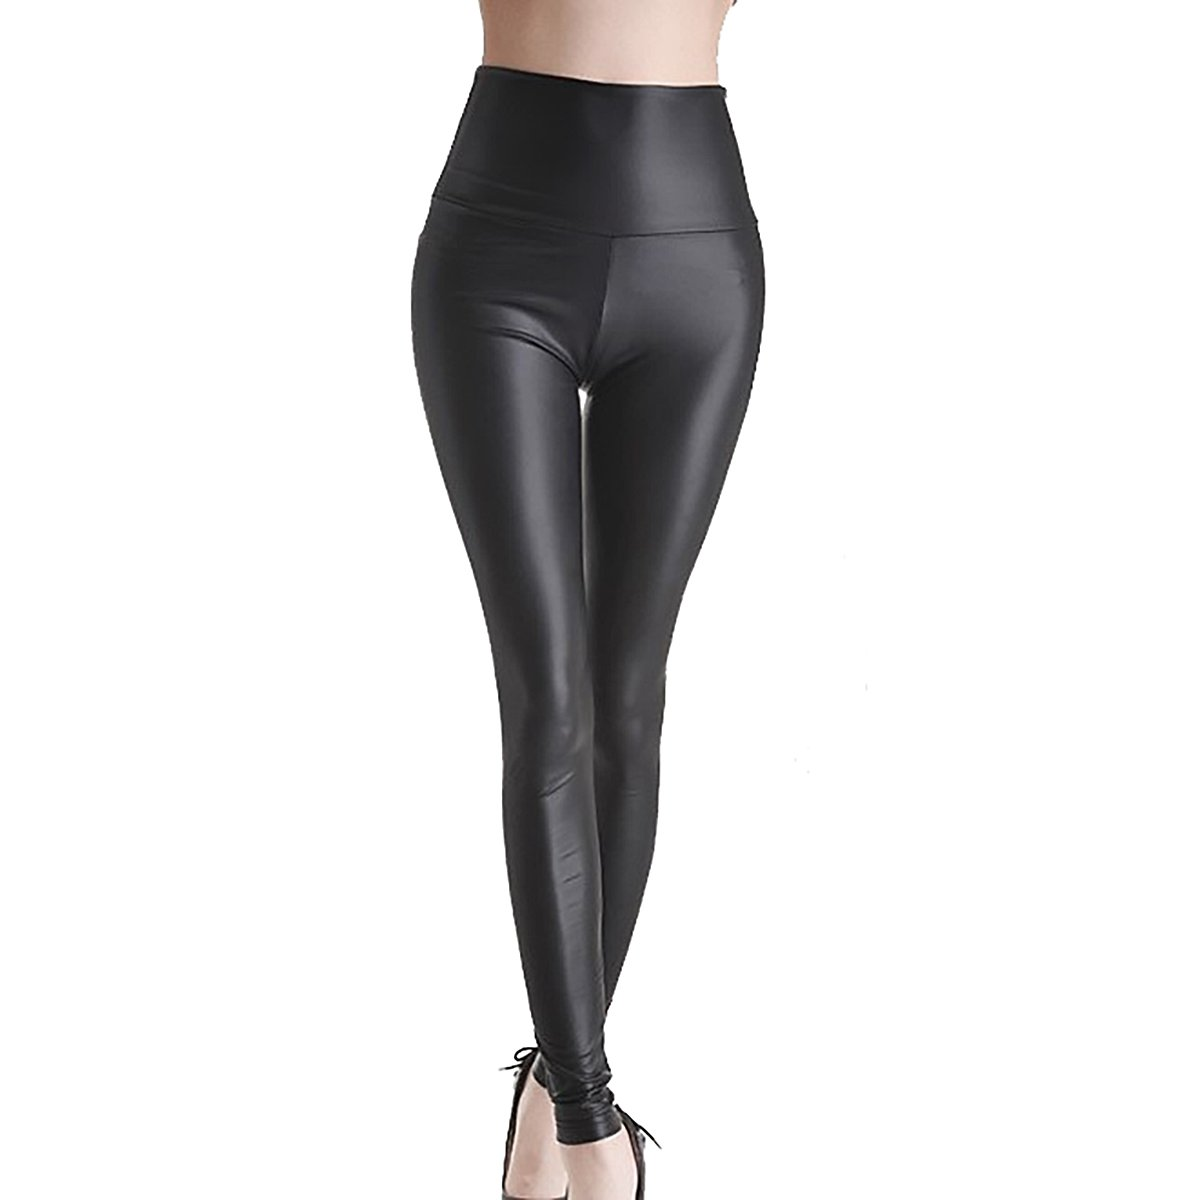 Women's Black Stretchy Leggings Faux Leather High Waist Leggings QiuLan